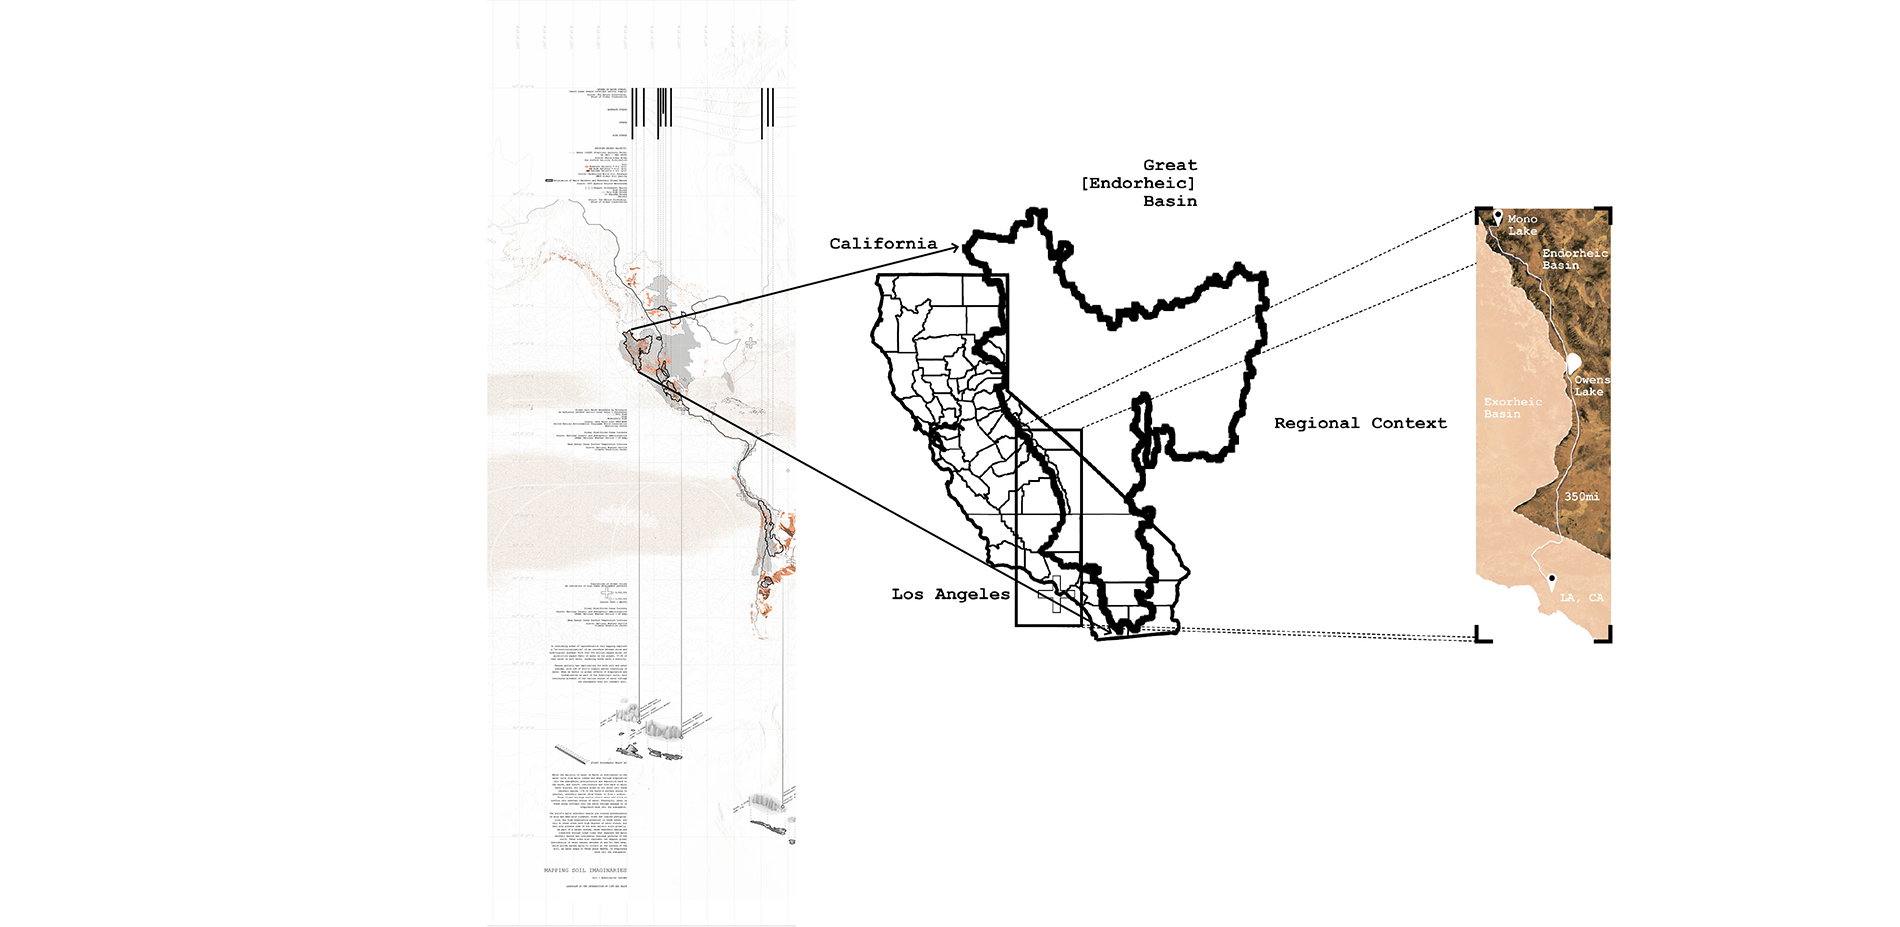 Territorial Context: Situating The Great [Endorheic] Basin + Owens Valley in reference to Los Angeles, CA